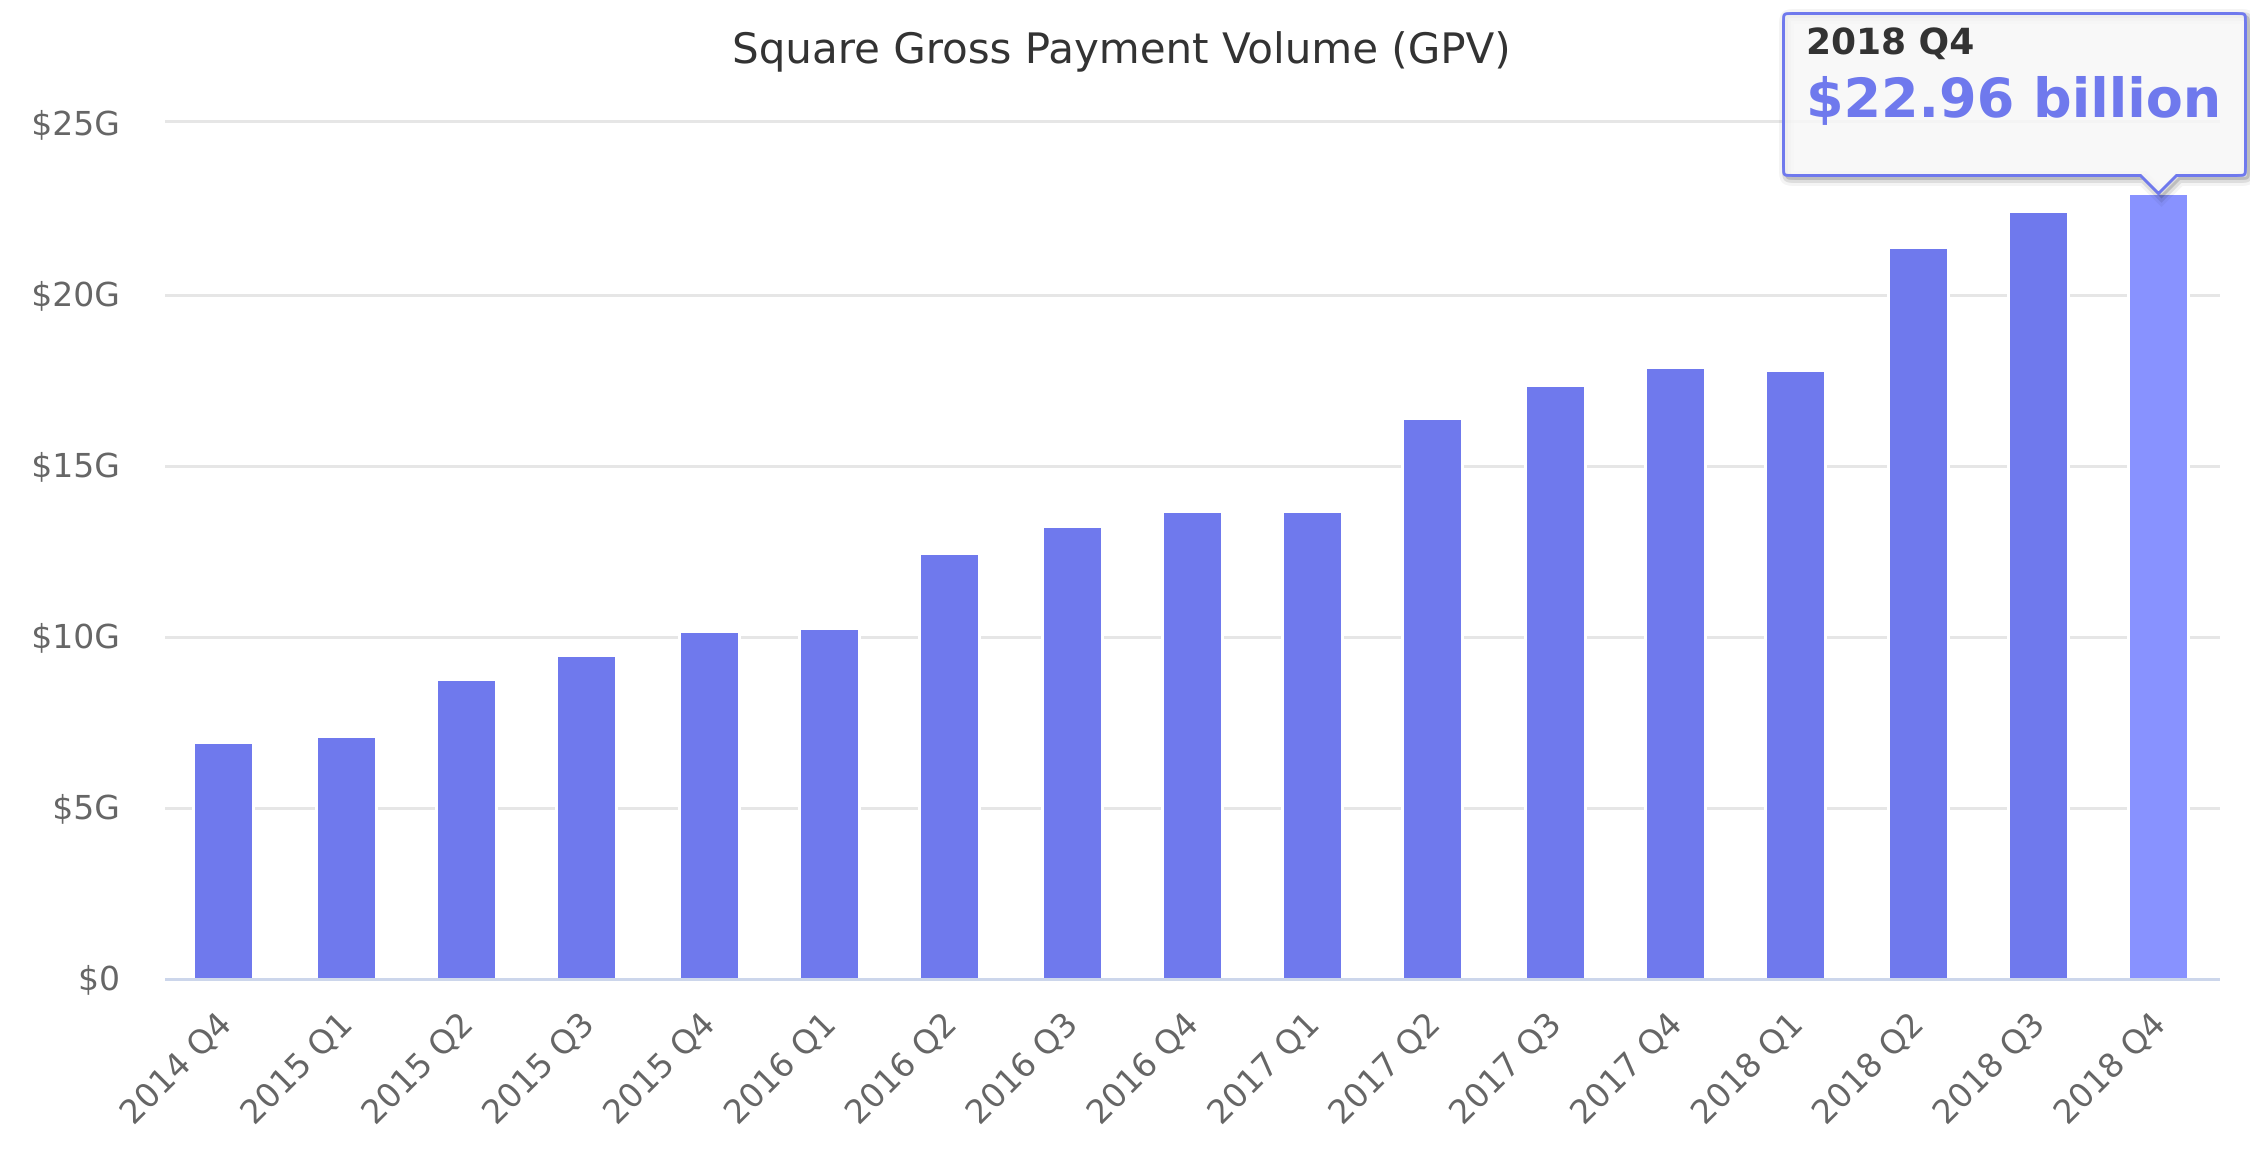 Square Gross Payment Volume (GPV) 2014-2018